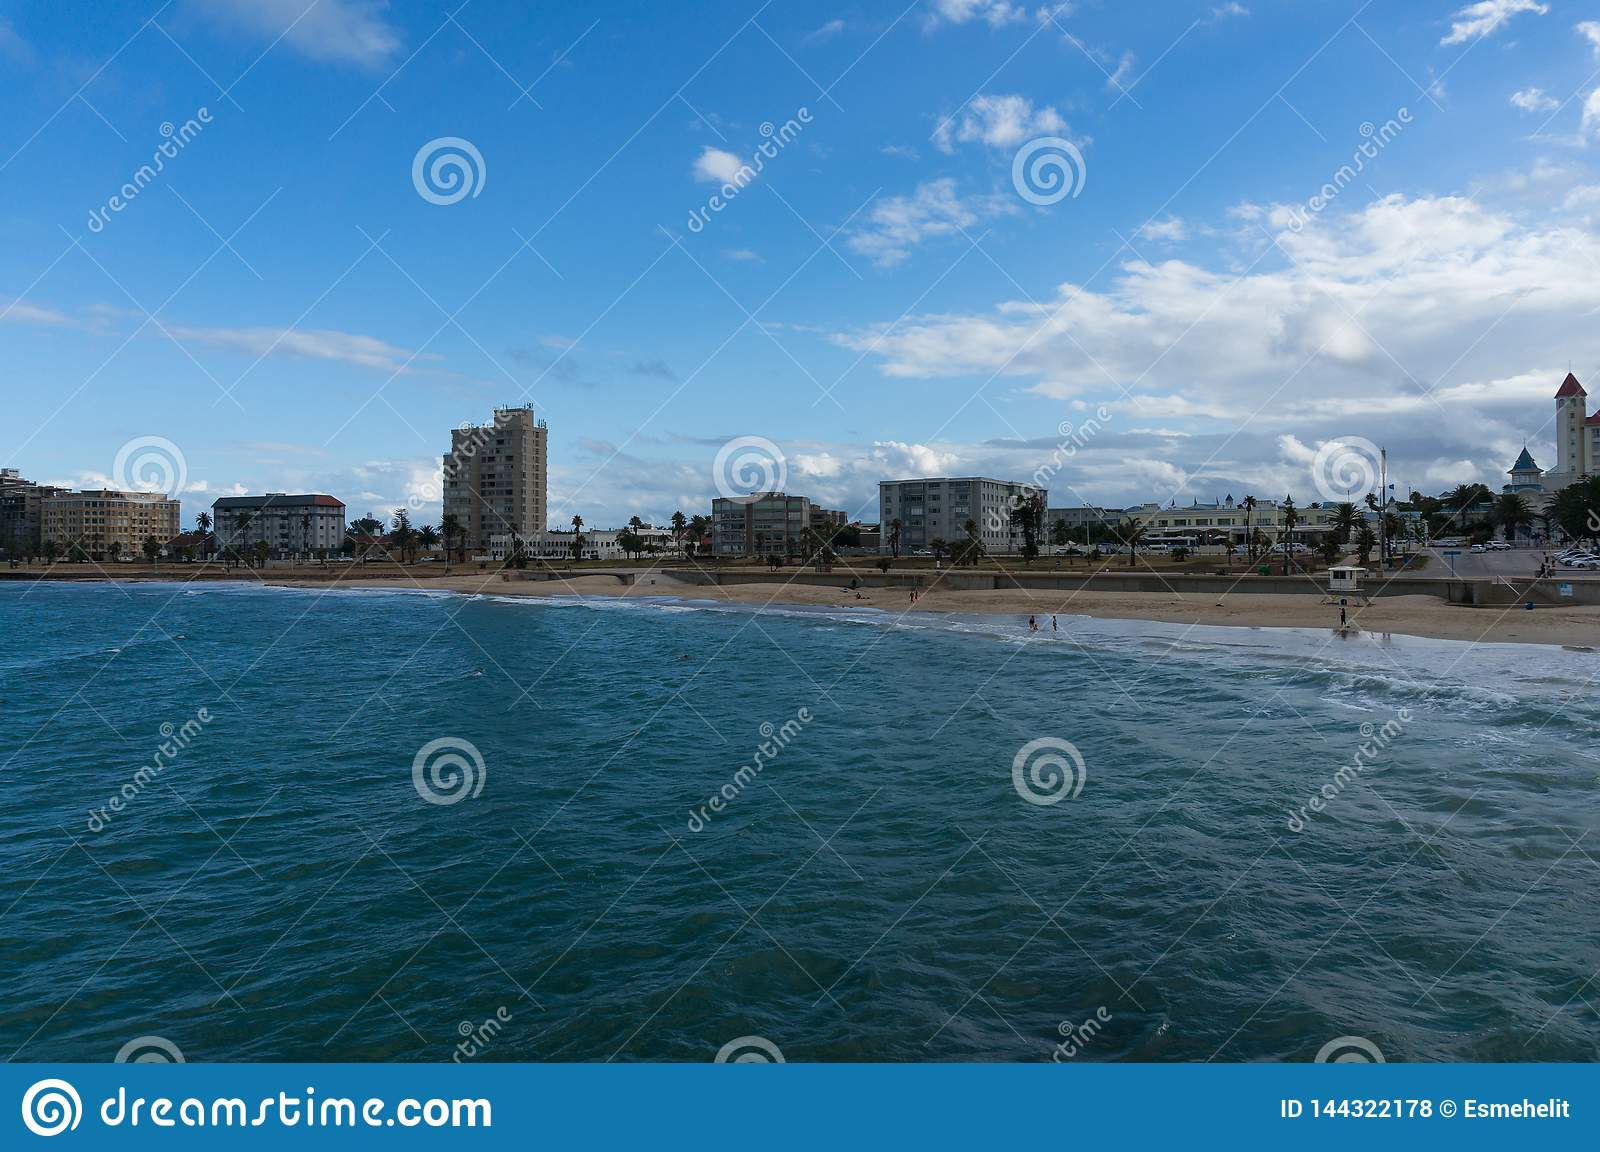 Unrecognizable people relaxing on the beach at Port Elizabeth, South Africa